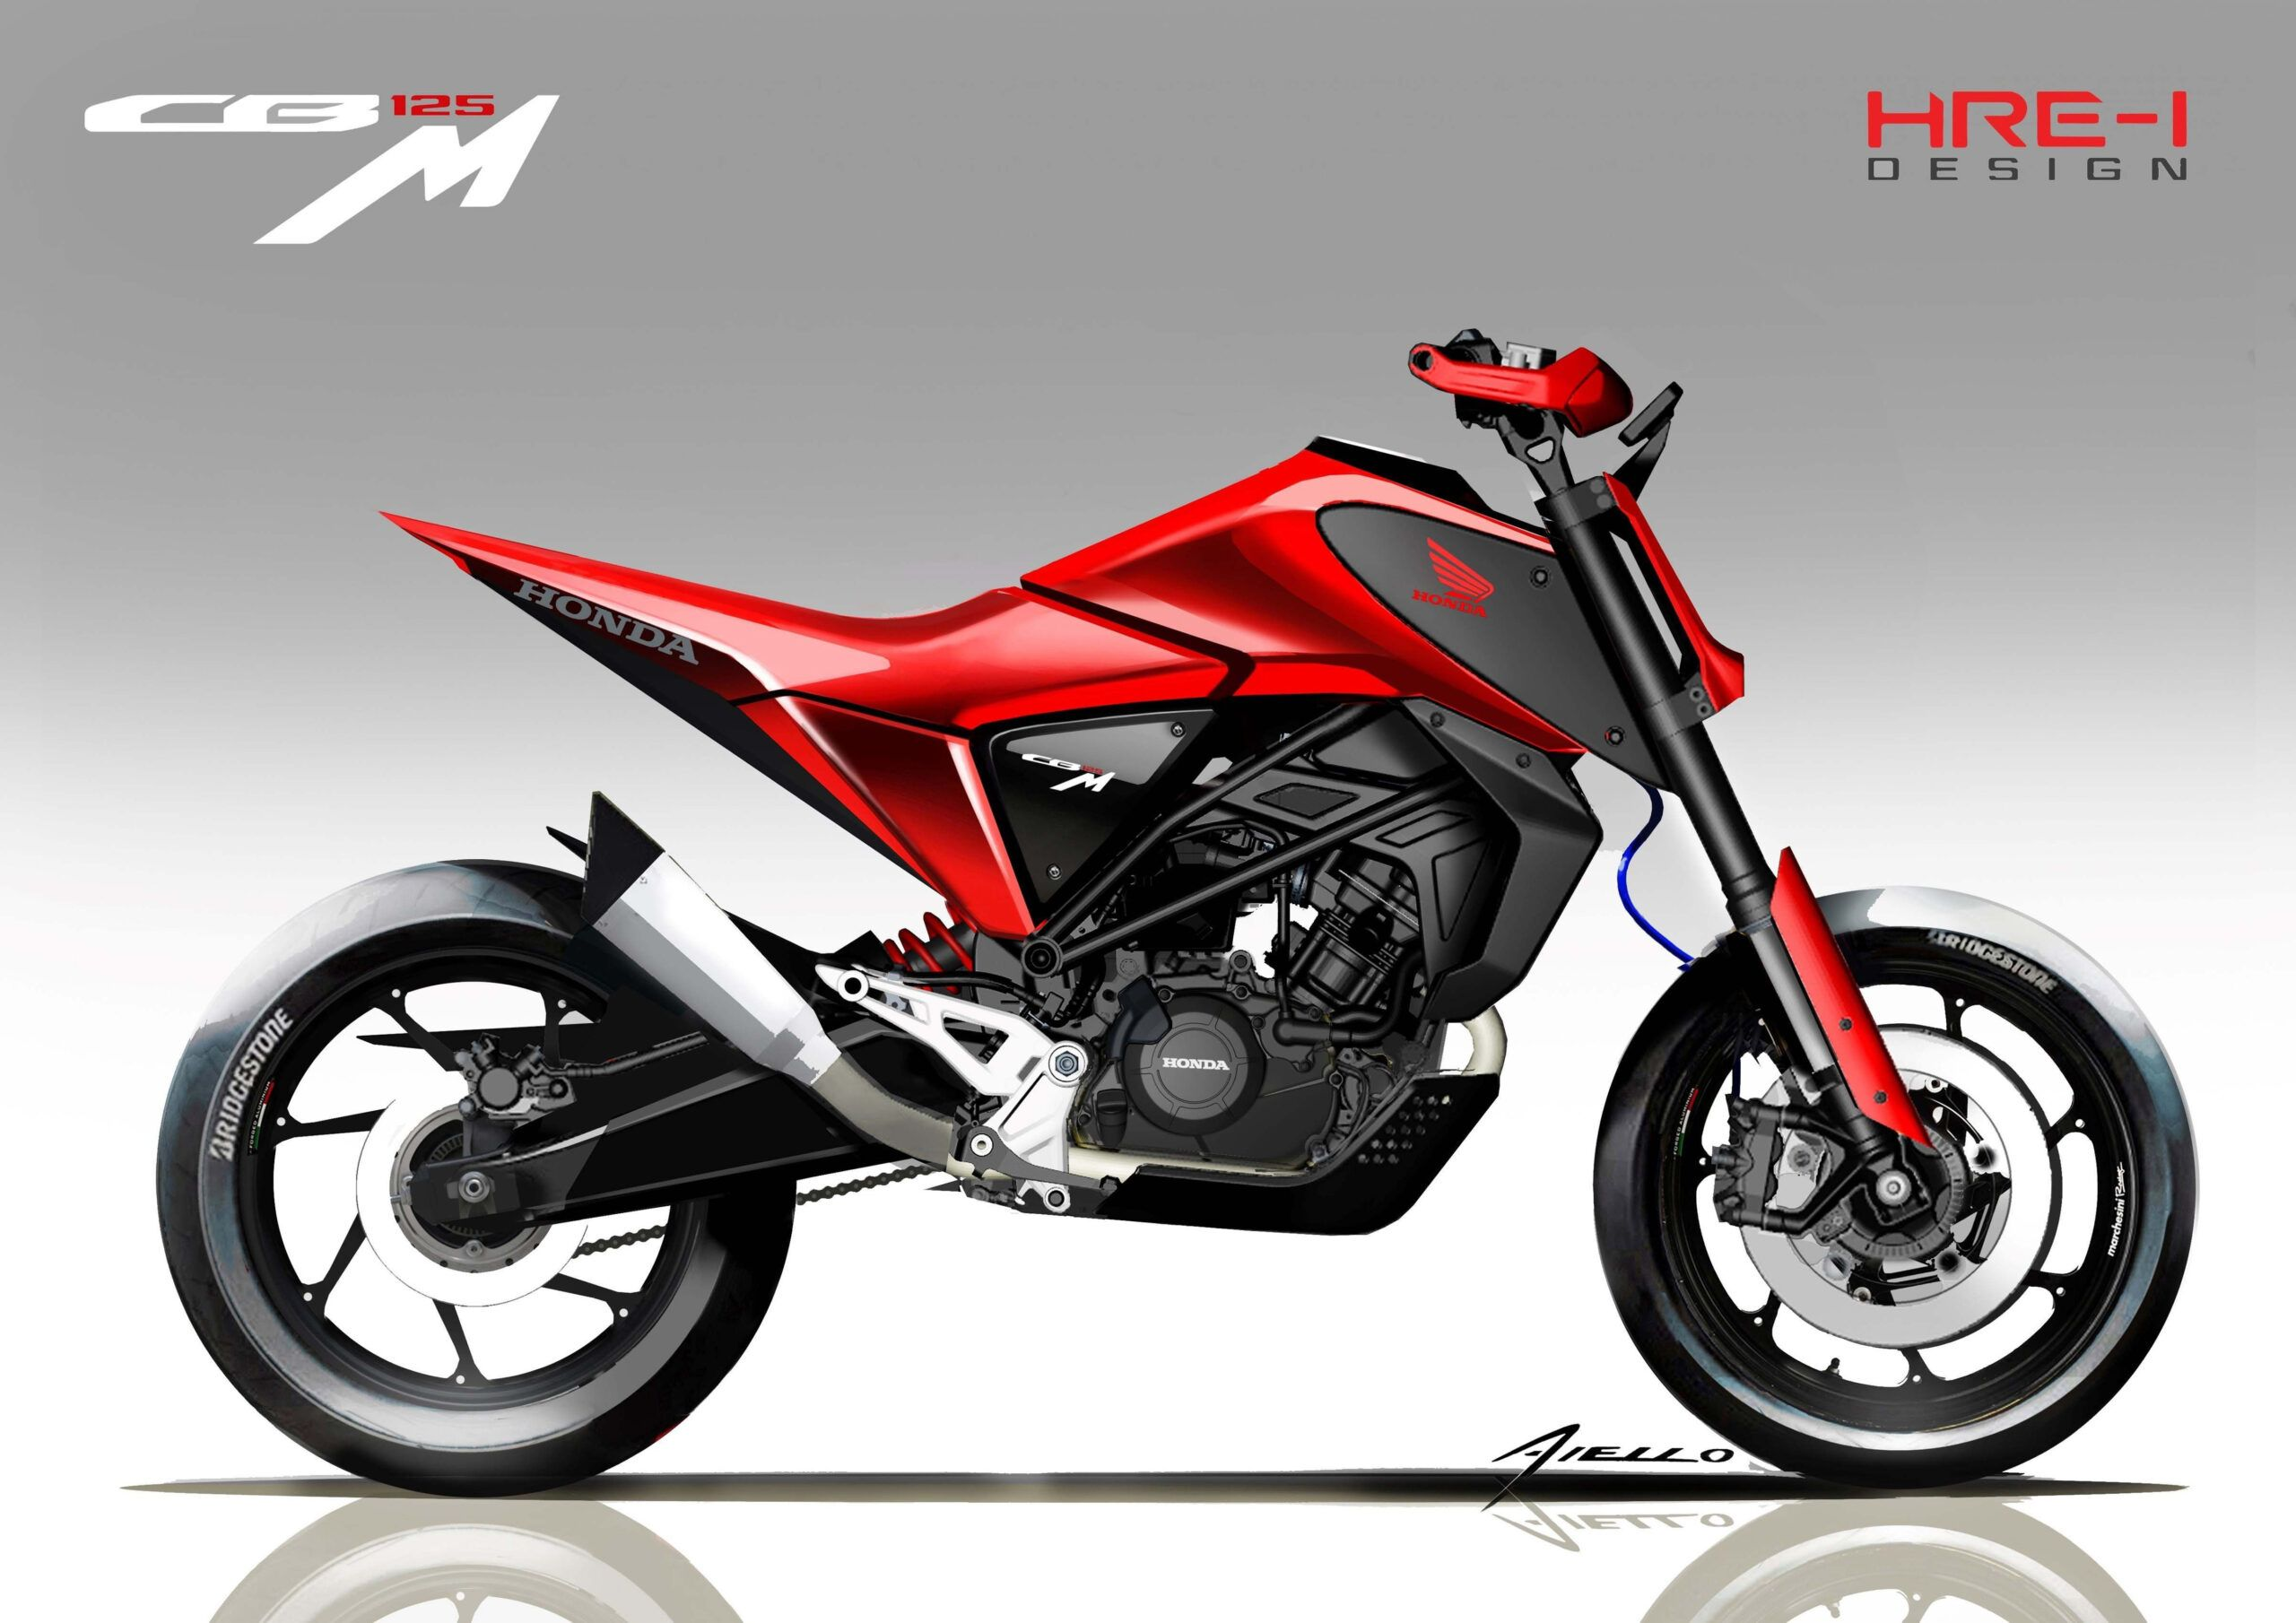 Honda Tmx 125 Price 2020 Redesign Check More At Http Dailymaza